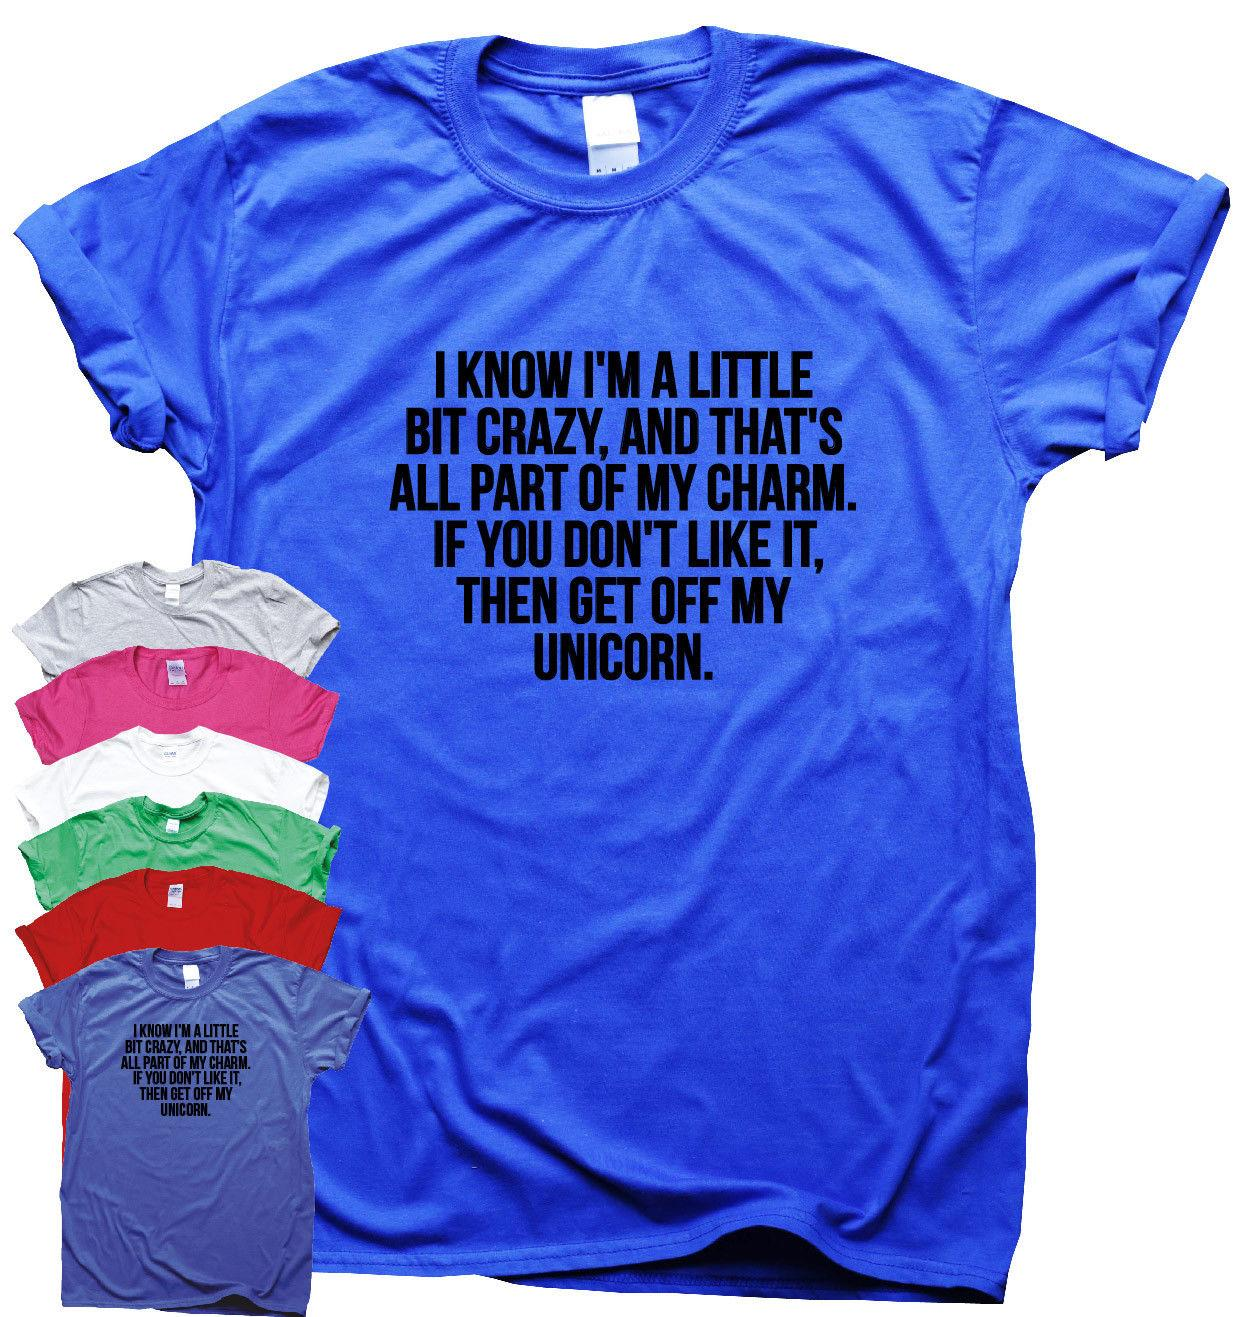 2a7922630e Get Off My Unicorn funny T shirts mens humour gift womens sarcastic slogan  top Funny free shipping Unisex Casual Tshirt top